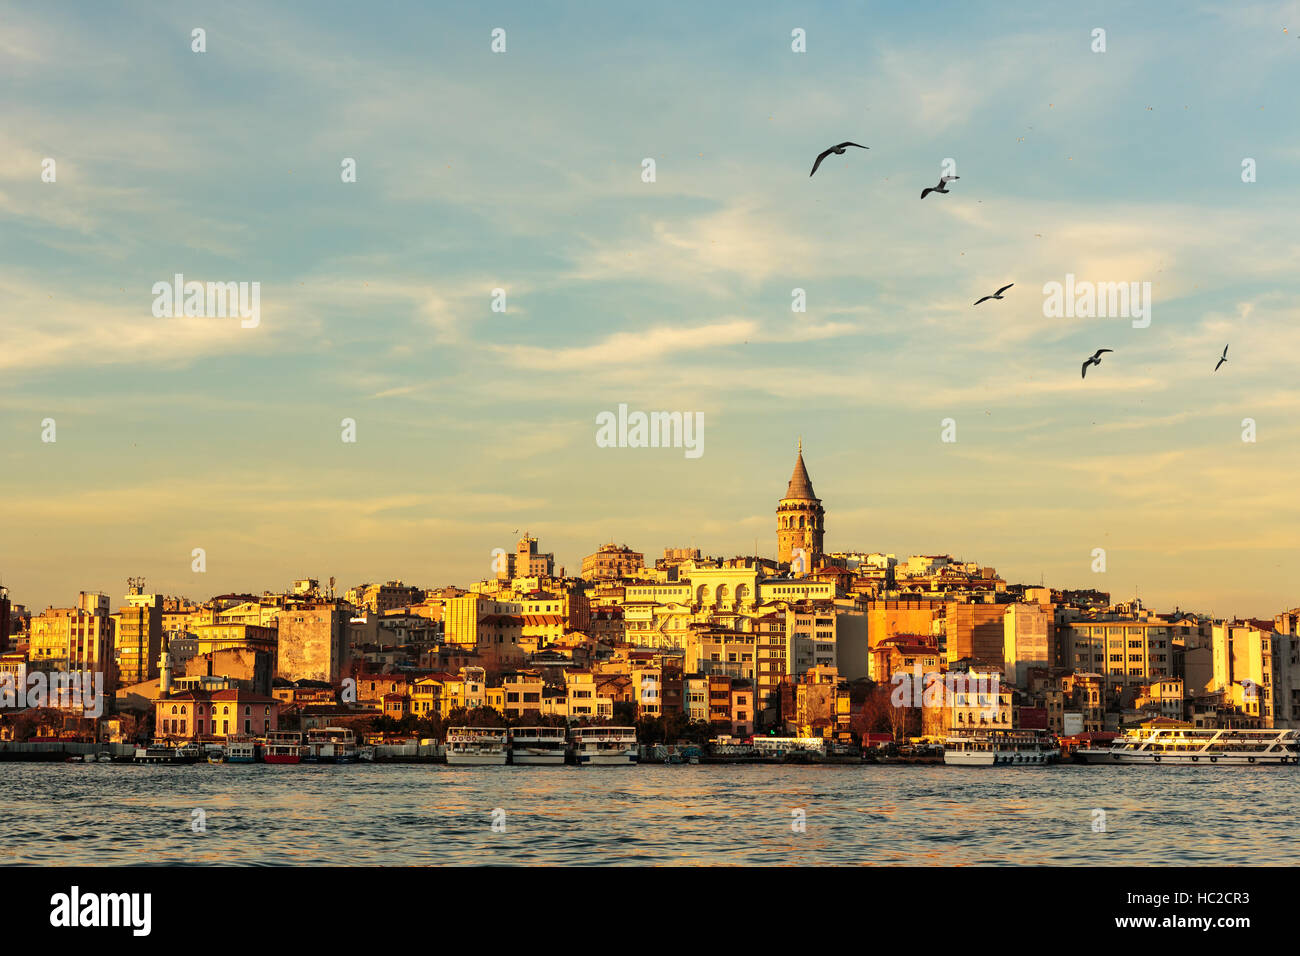 Galata Tower and Golden Horn with nice blue sky and seagulls flying - Stock Image